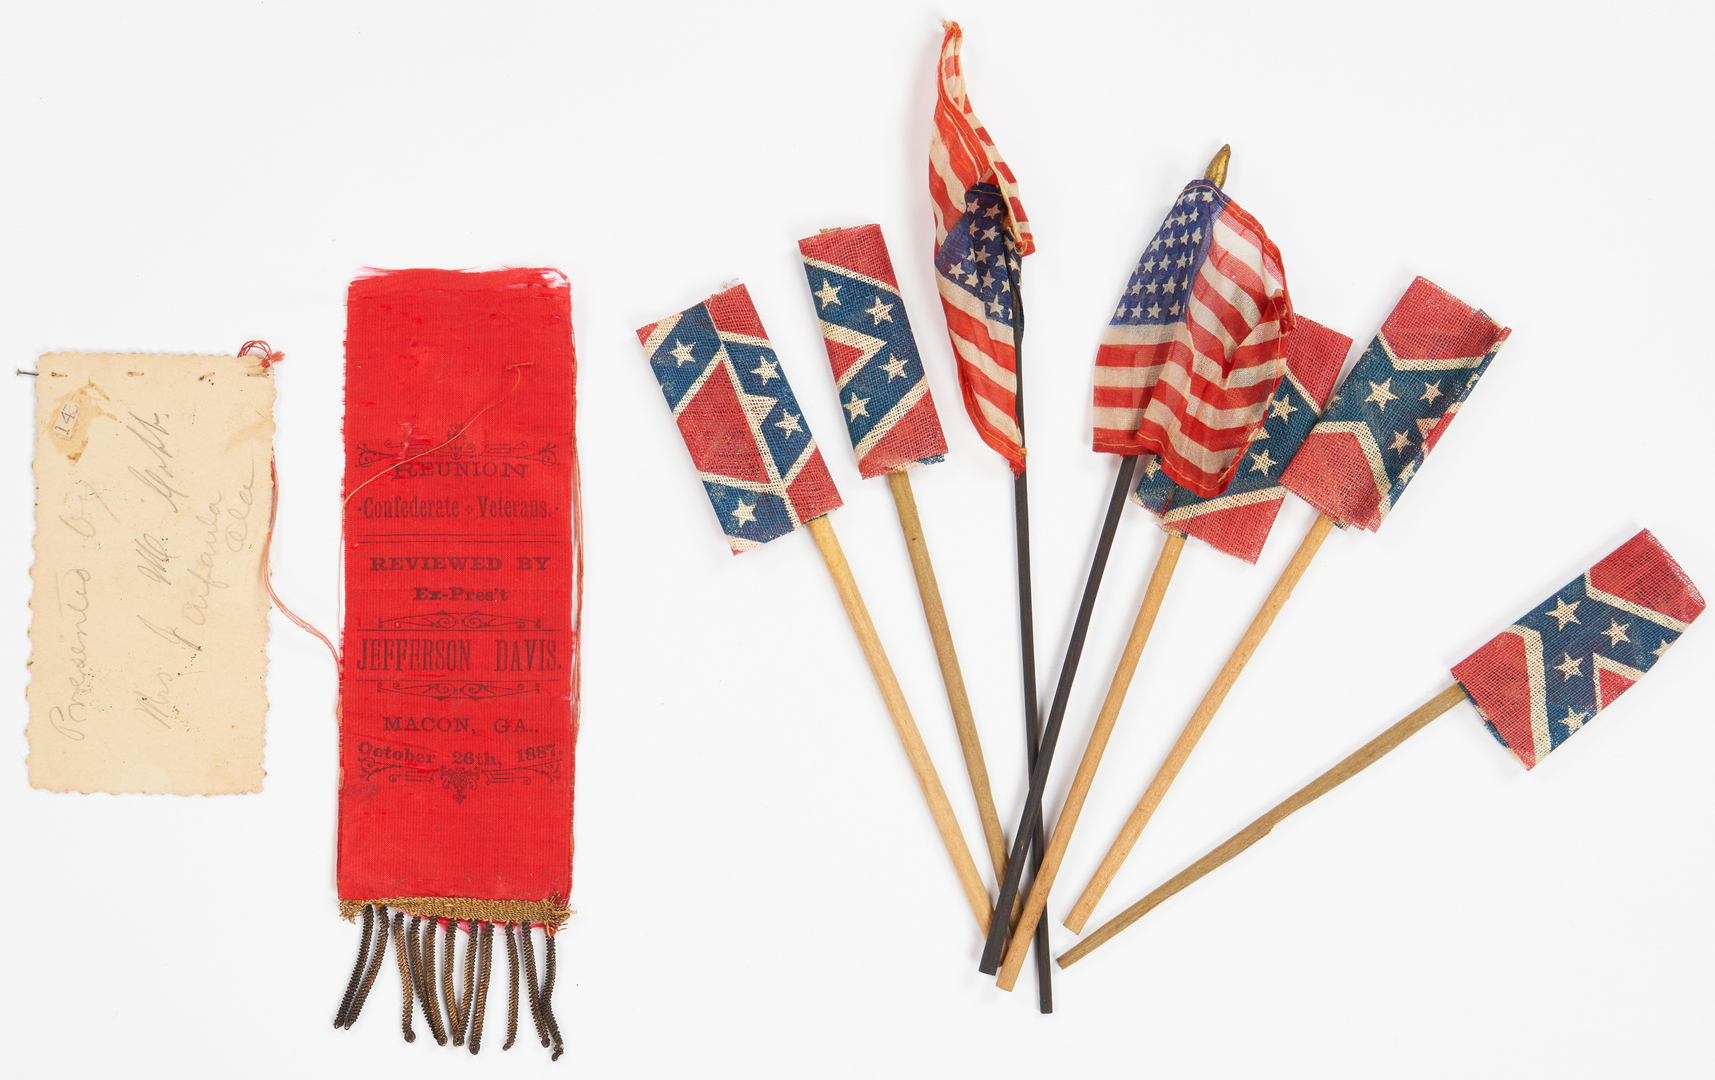 Lot 610: Assembled Group of 34 Civil War/U.S. Revolution Related Items